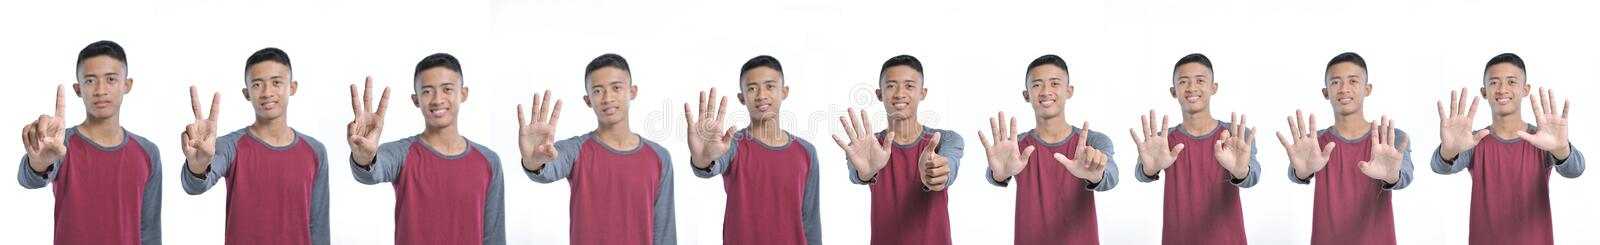 Collage of happy young asian man showing counting sign from one to ten while smiling confident and happy royalty free stock photography